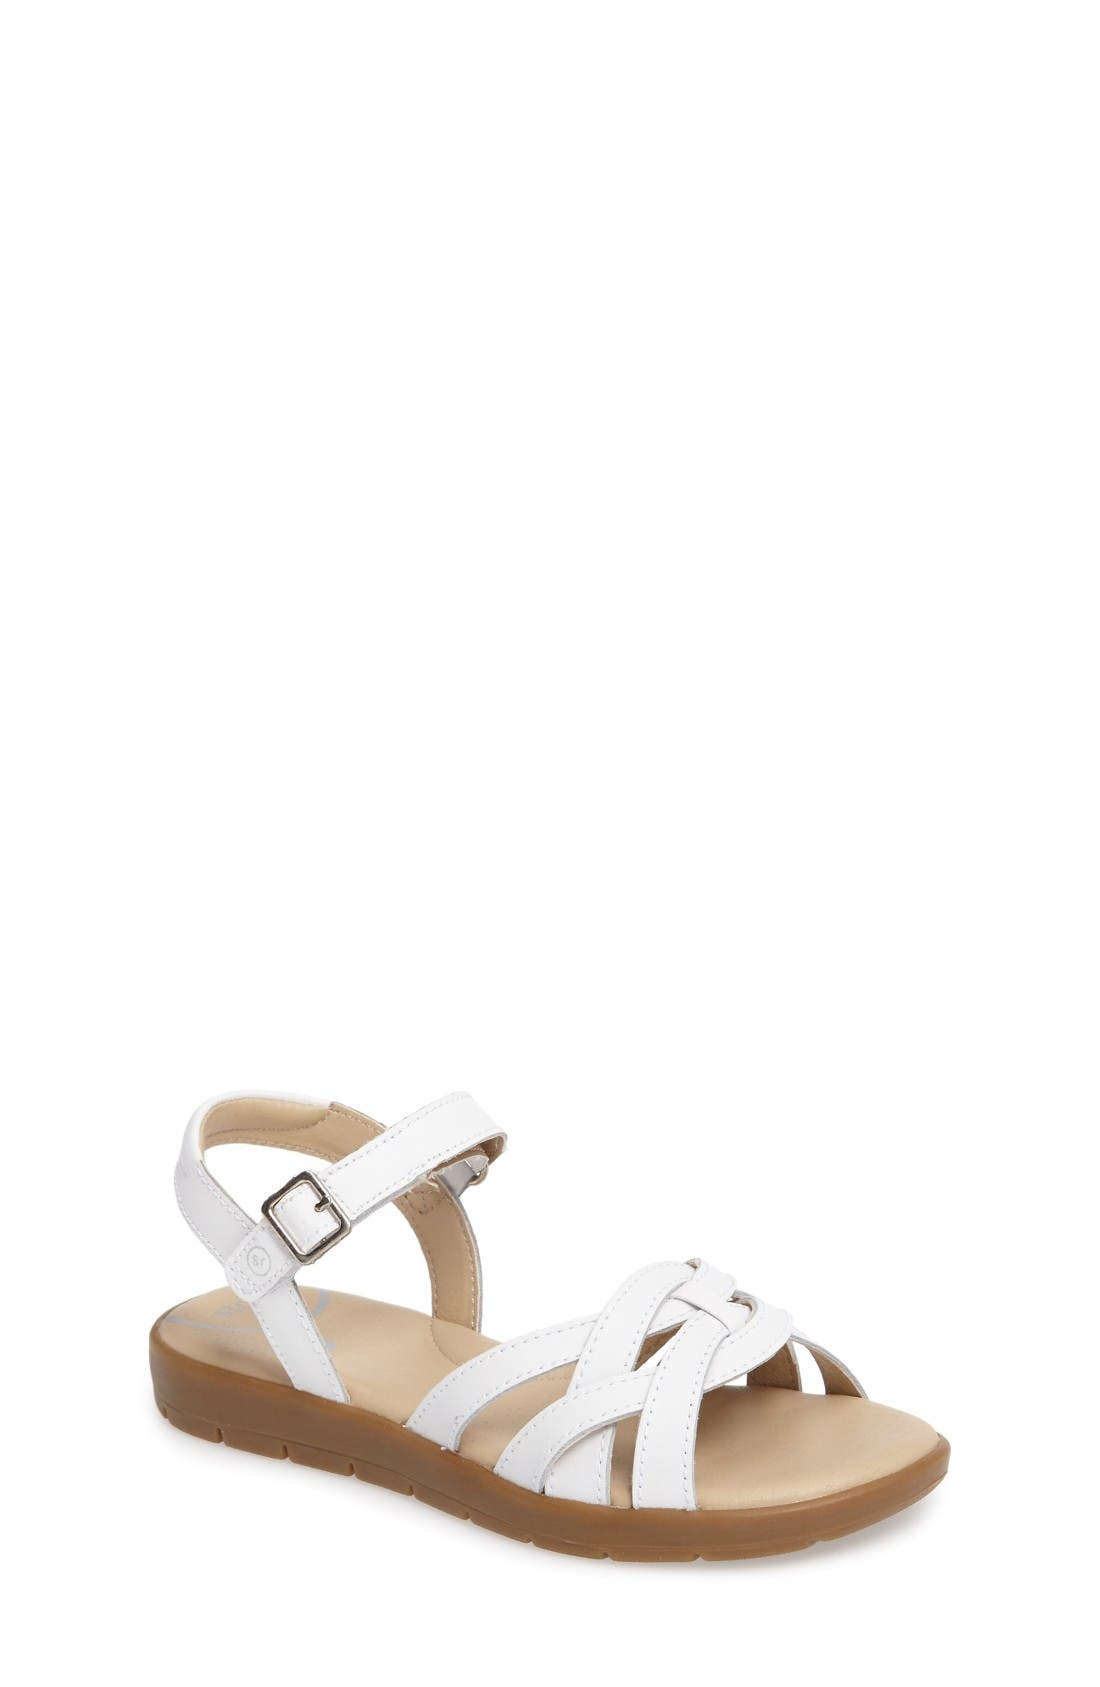 Millie Sandal,                             Main thumbnail 1, color,                             White